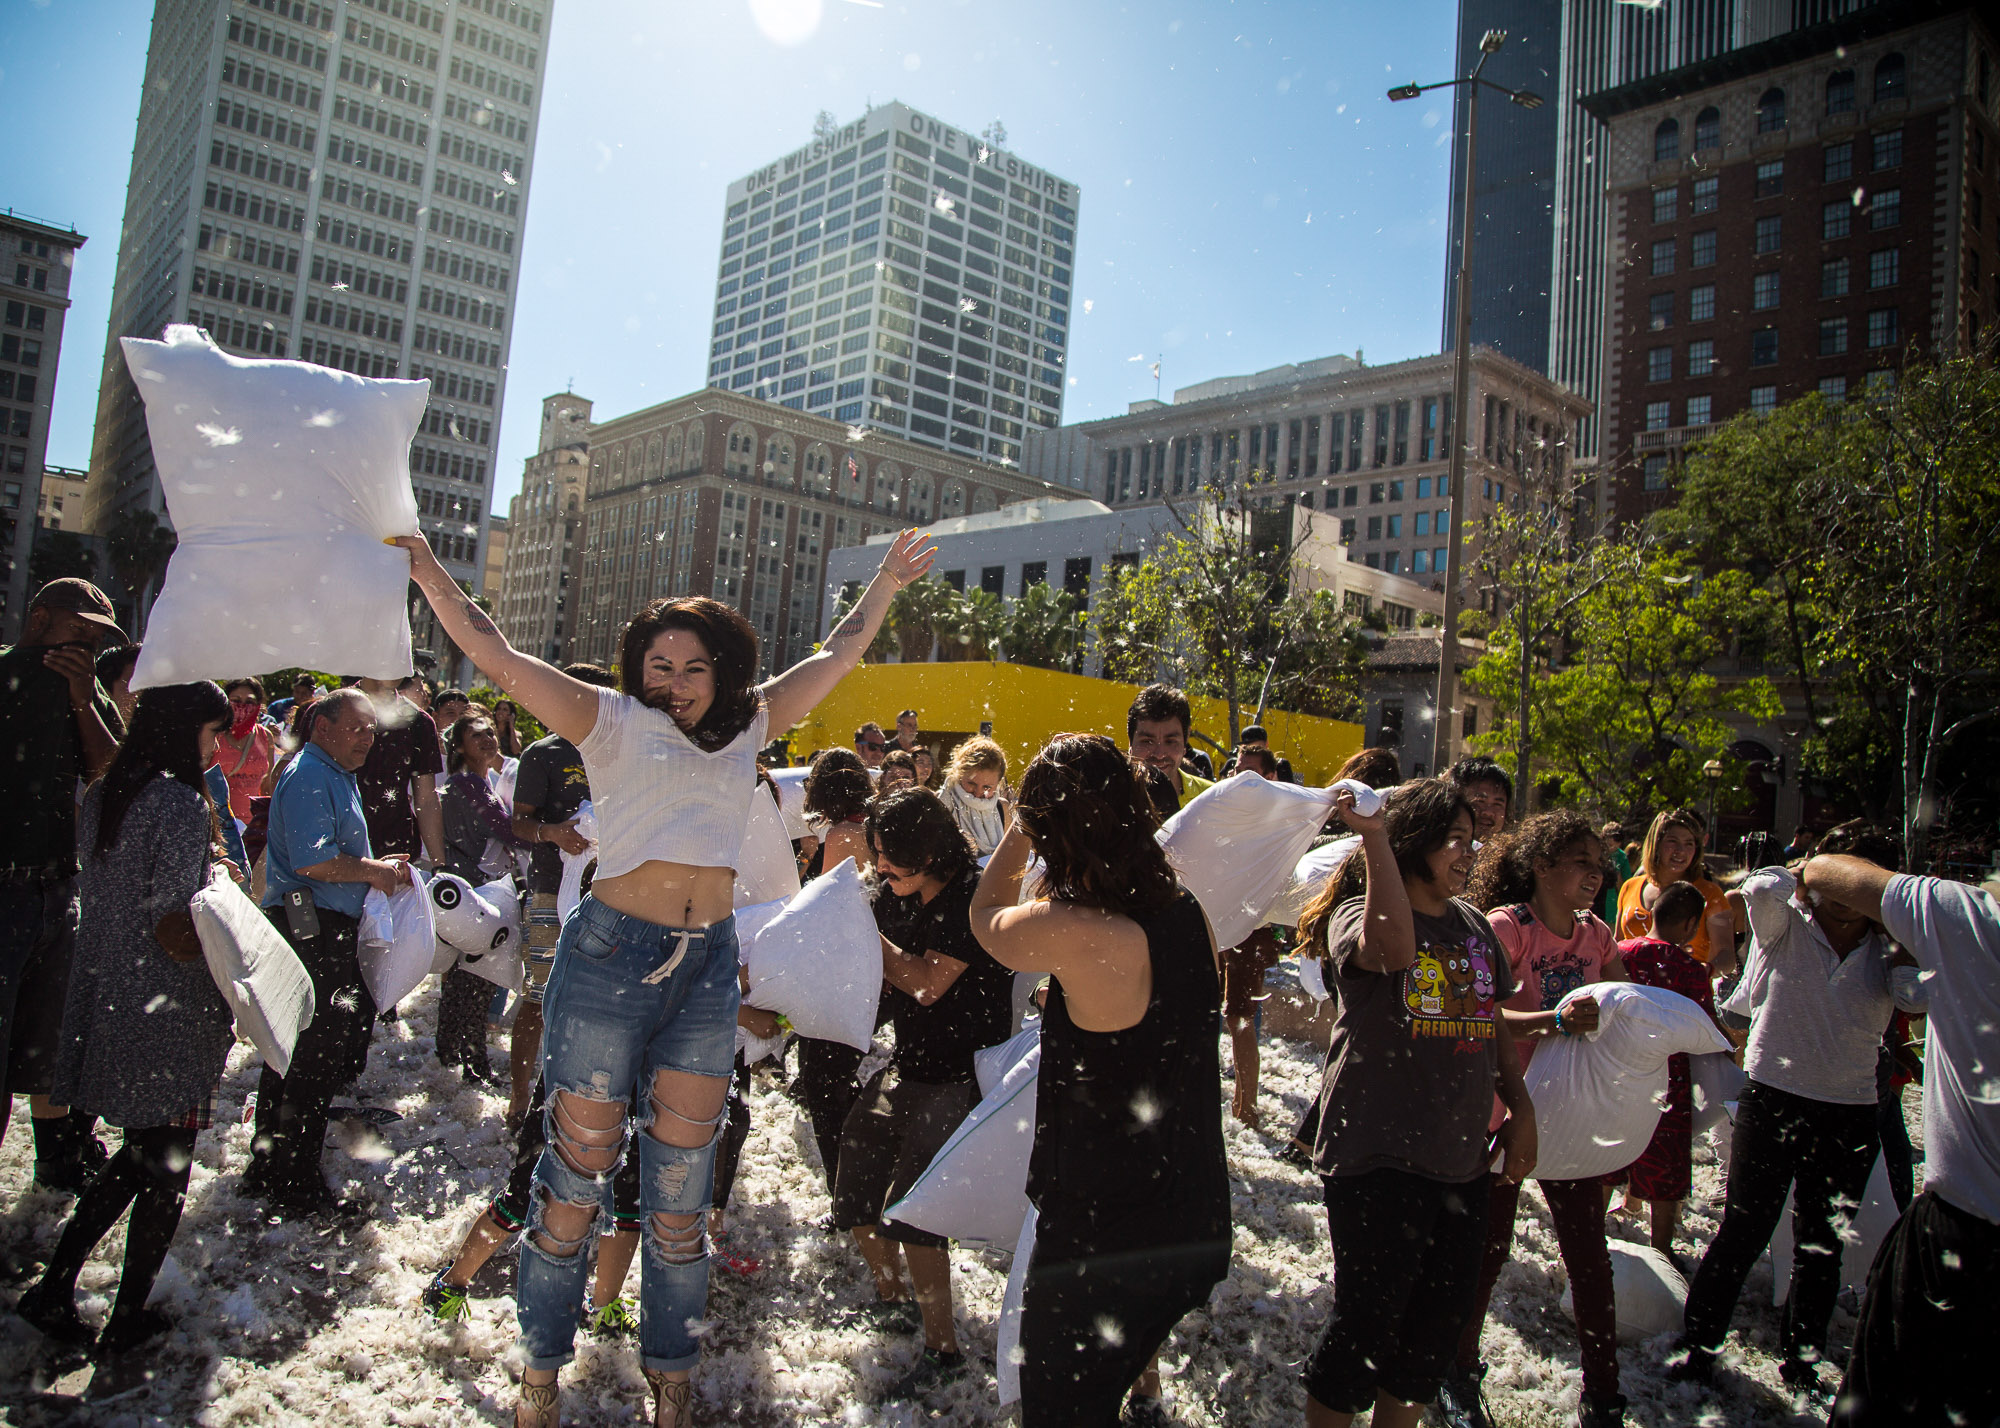 Participants take part in a giant pillow fight as feathers fly in Pershing Square in Downtown Los Angles on Saturday, April 1 2017. Hundreds of people traded soft blows in a giant pillow fight that dwarfed even the biggest slumber party slugfest. The annual event is held to celebrate International Pillow Fight Day as children, teens, adults and seniors swung pillows at one another for over 2 hours during Saturdays event. (Corsair Photo: Matthew Martin)